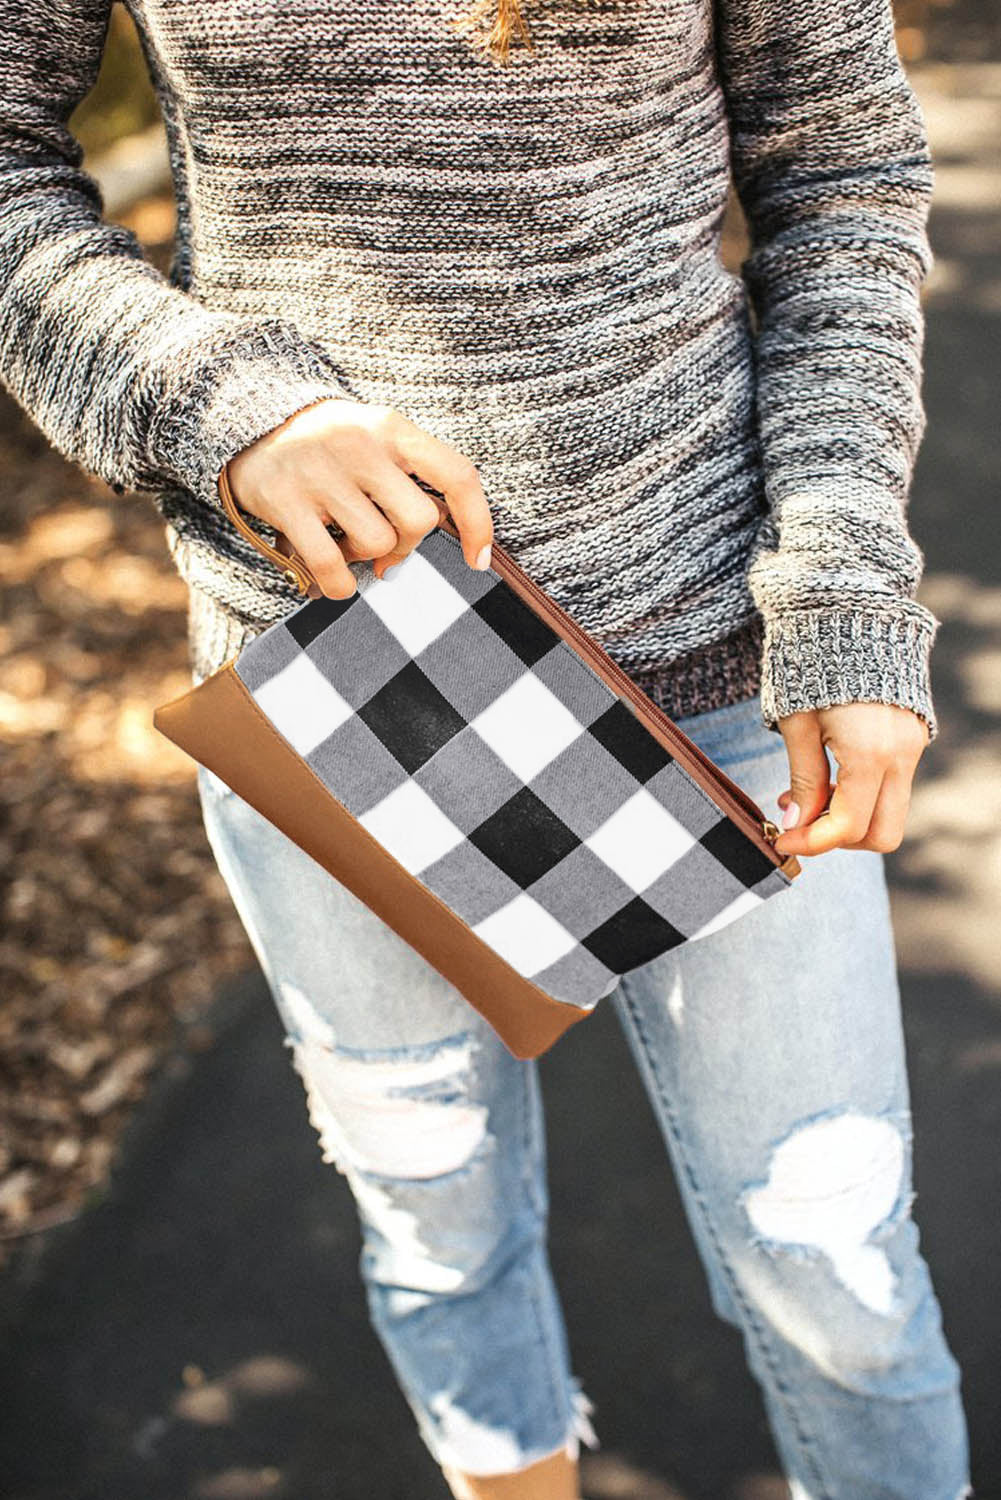 Black Plaid Print Clutch with PU Accent Bags Discount Designer Fashion Clothes Shoes Bags Women Men Kids Children Black Owned Business